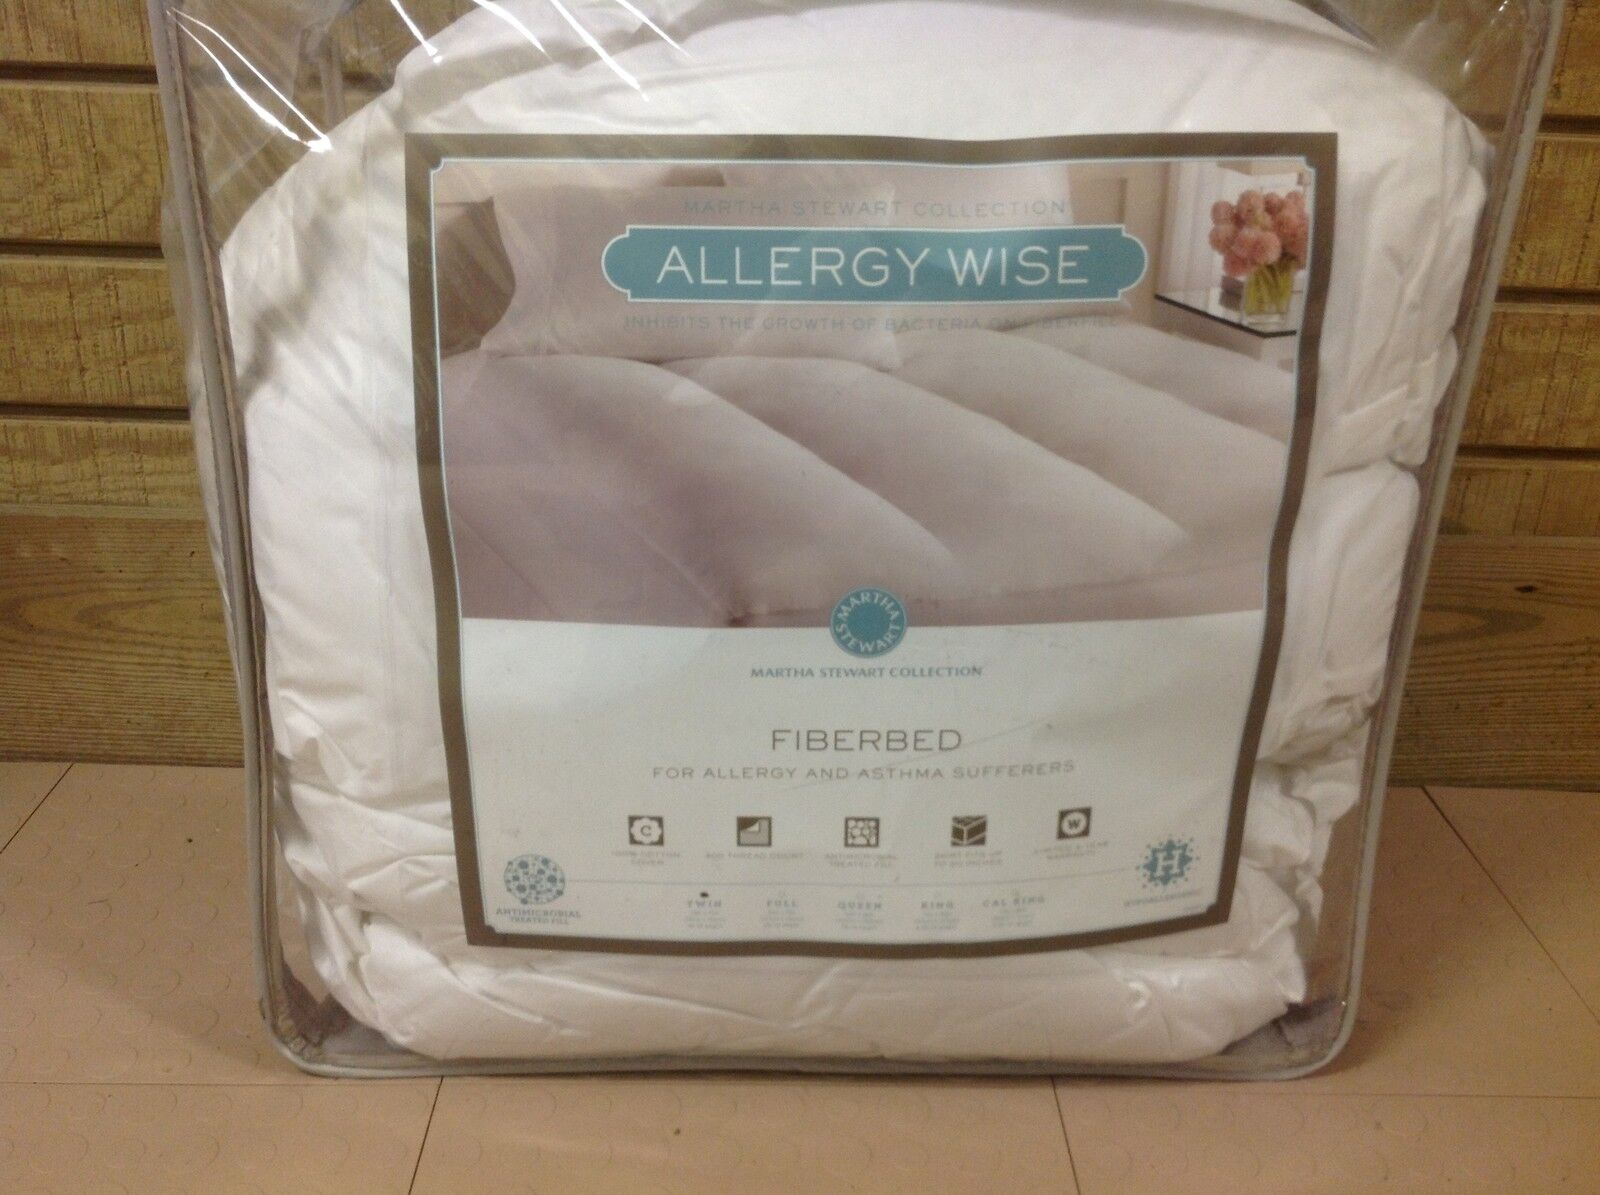 Martha Stewart Collection Fiberbed Allergy Asthma Sufferers Twin Fiberfill New